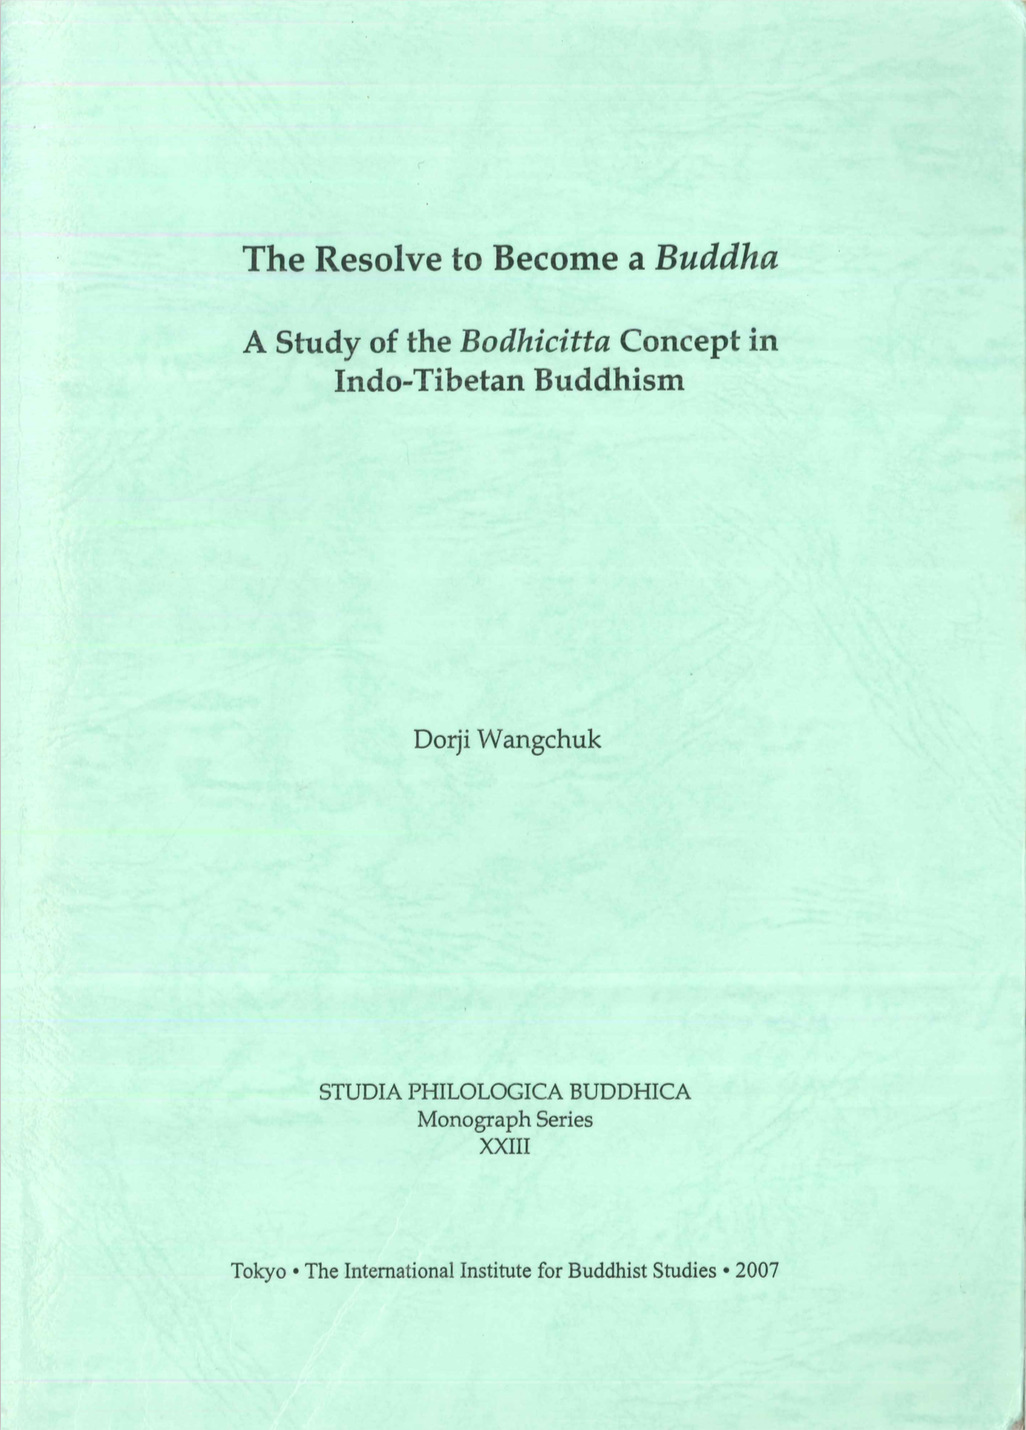 Wangchuk  Dorji - The Resolve to Become a Buddha  A Study of the Bodhicitta